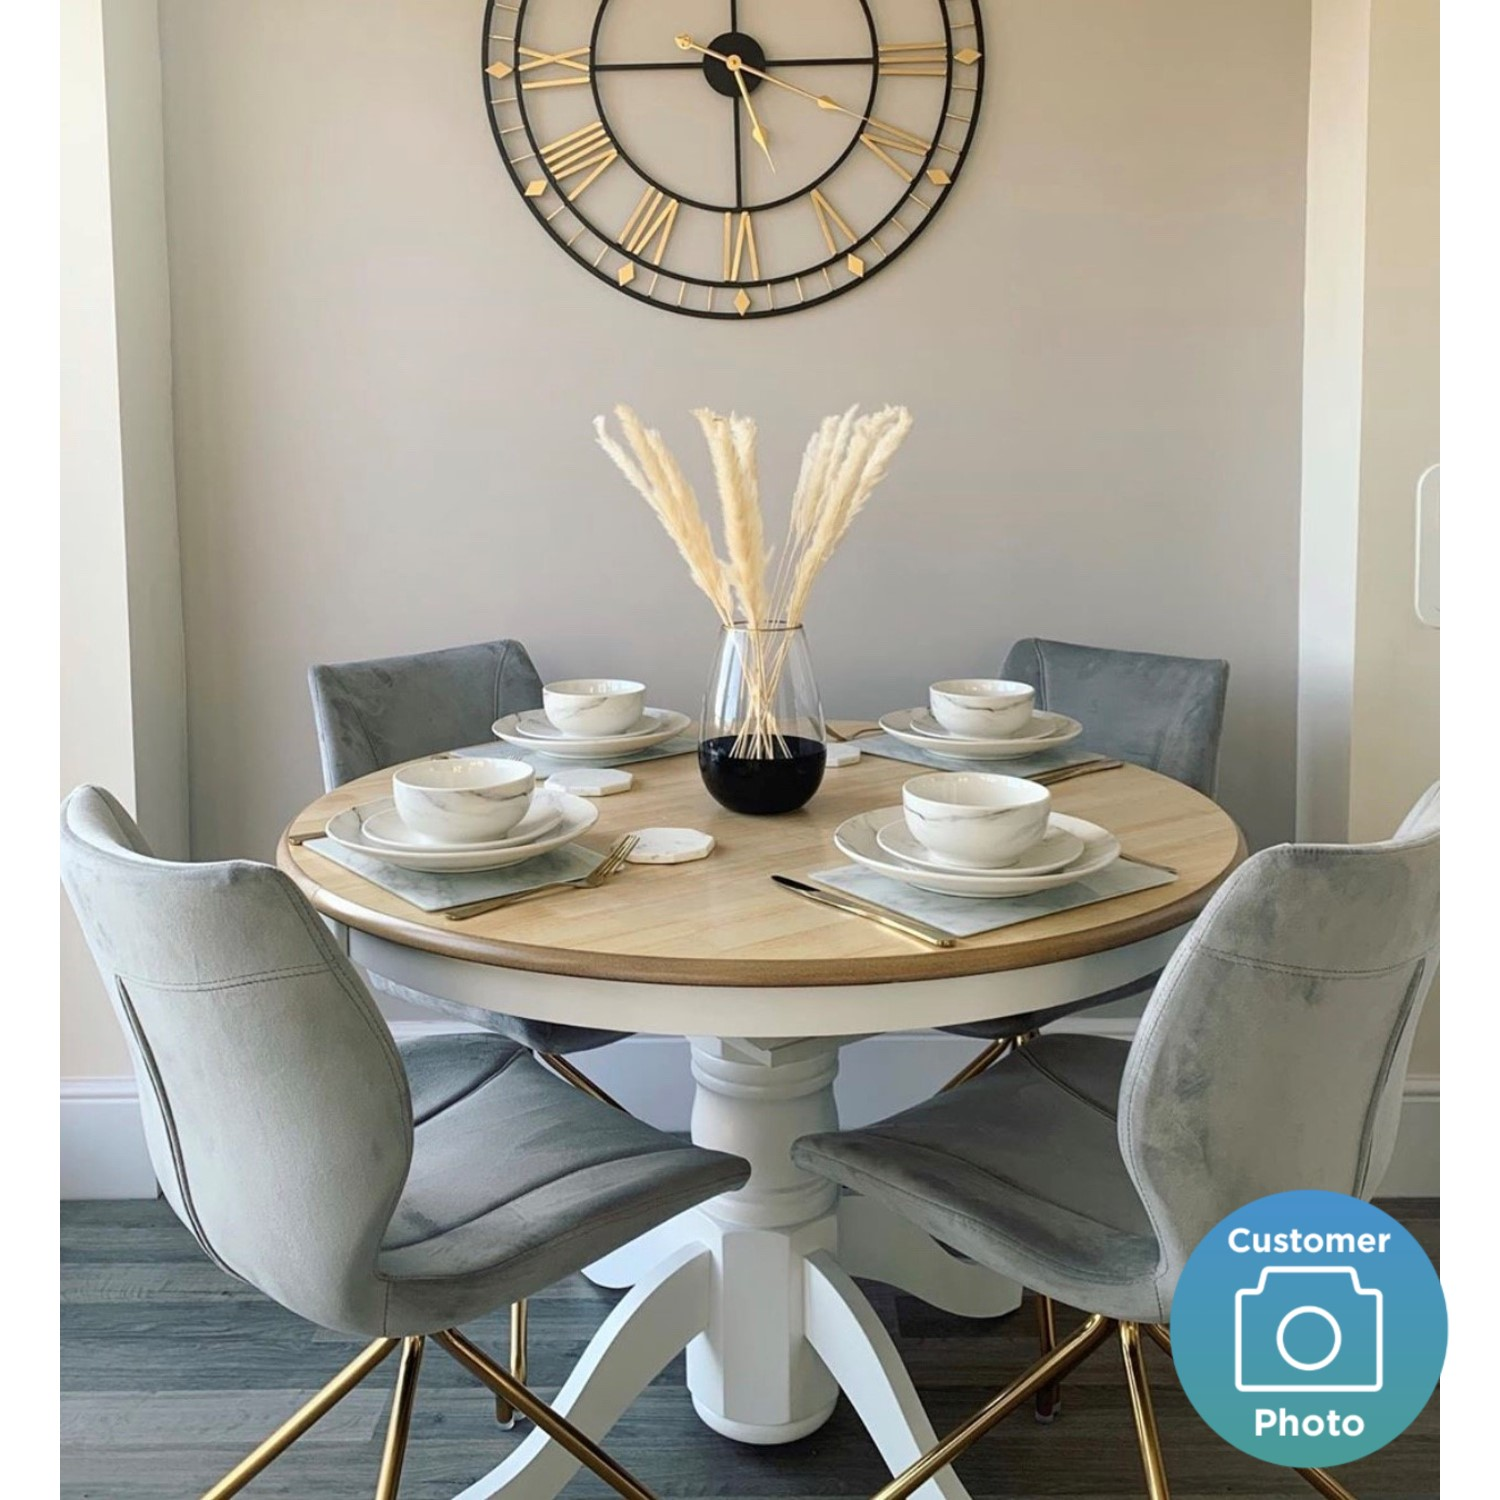 Round Pedestal Dining Table In White With Wood Top Seats 4 Rhode Island Furniture123